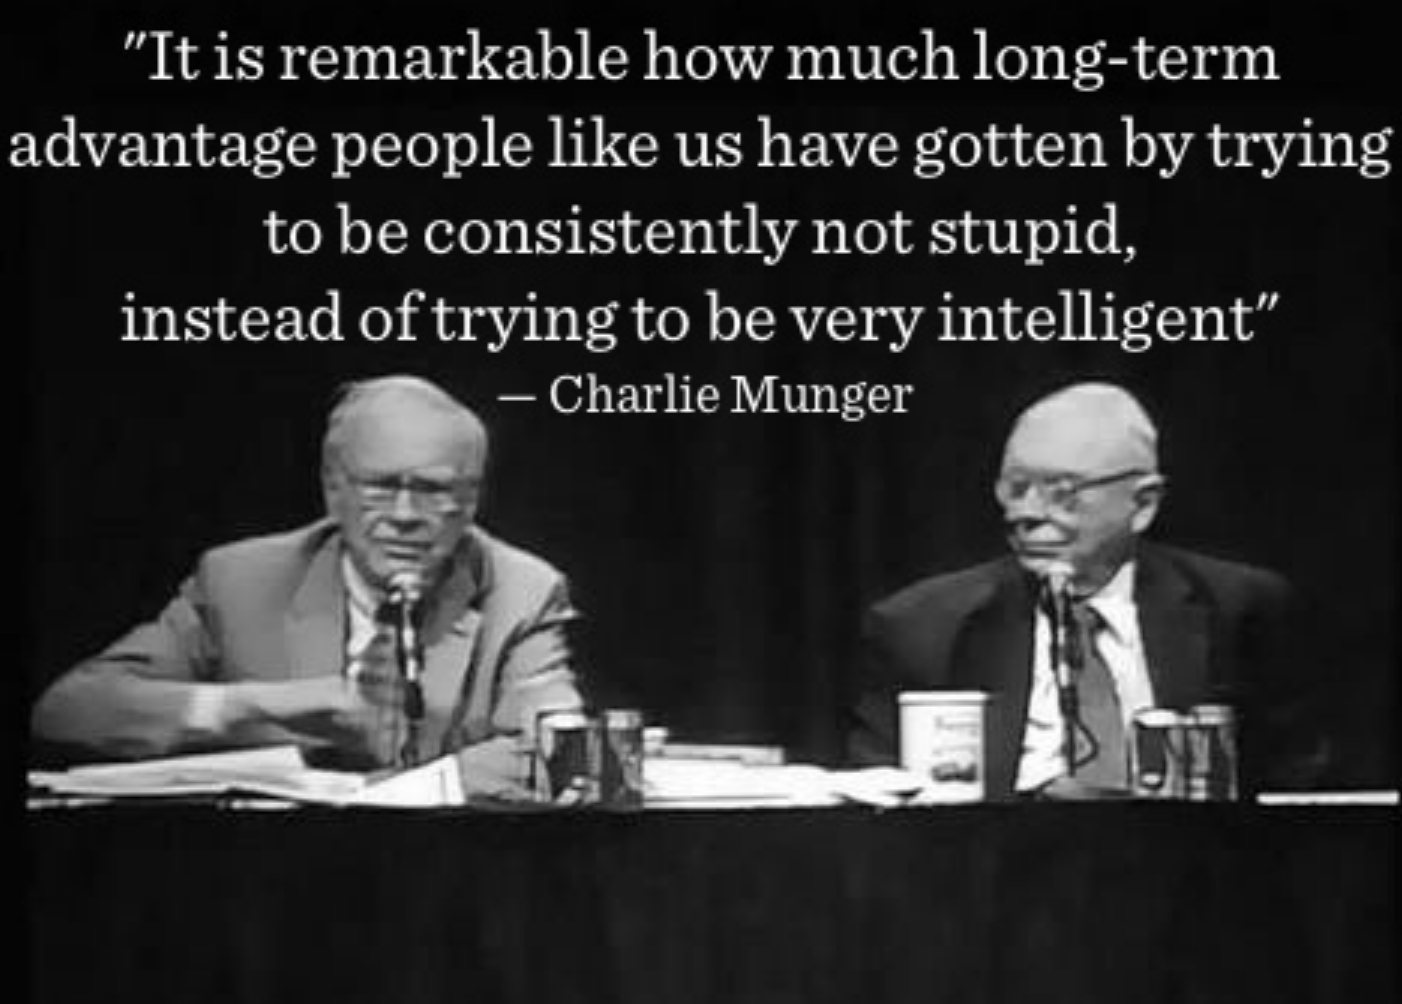 charlie munger quotes - Google Search